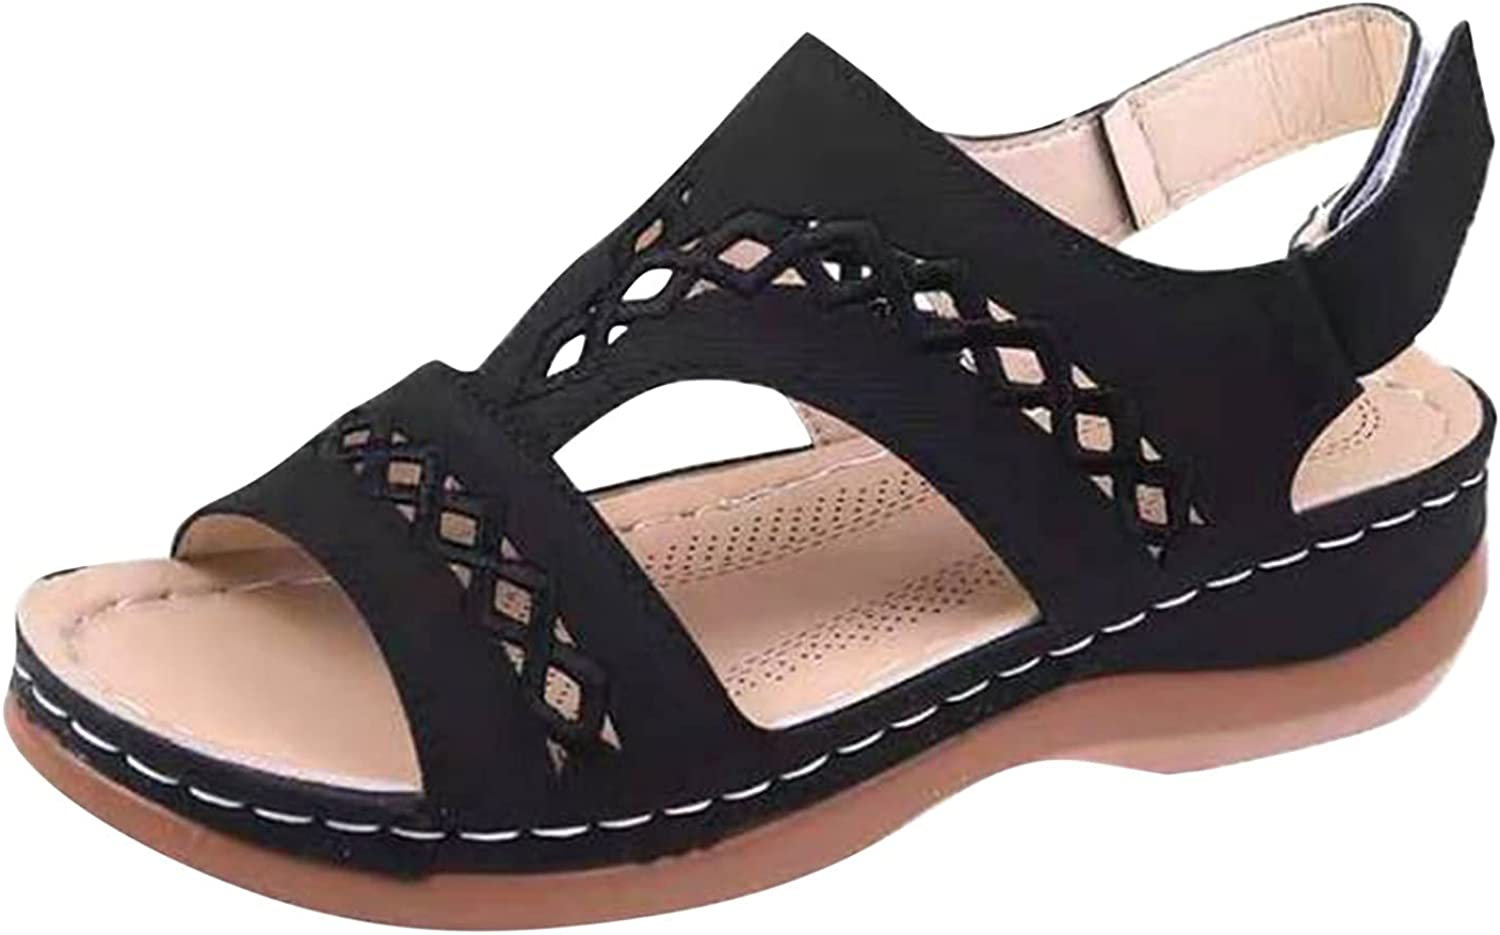 TUSANG Women's Hollow Out Wedges Sandals Slip-On Breathable Indoor Outdoor Travel Shoes